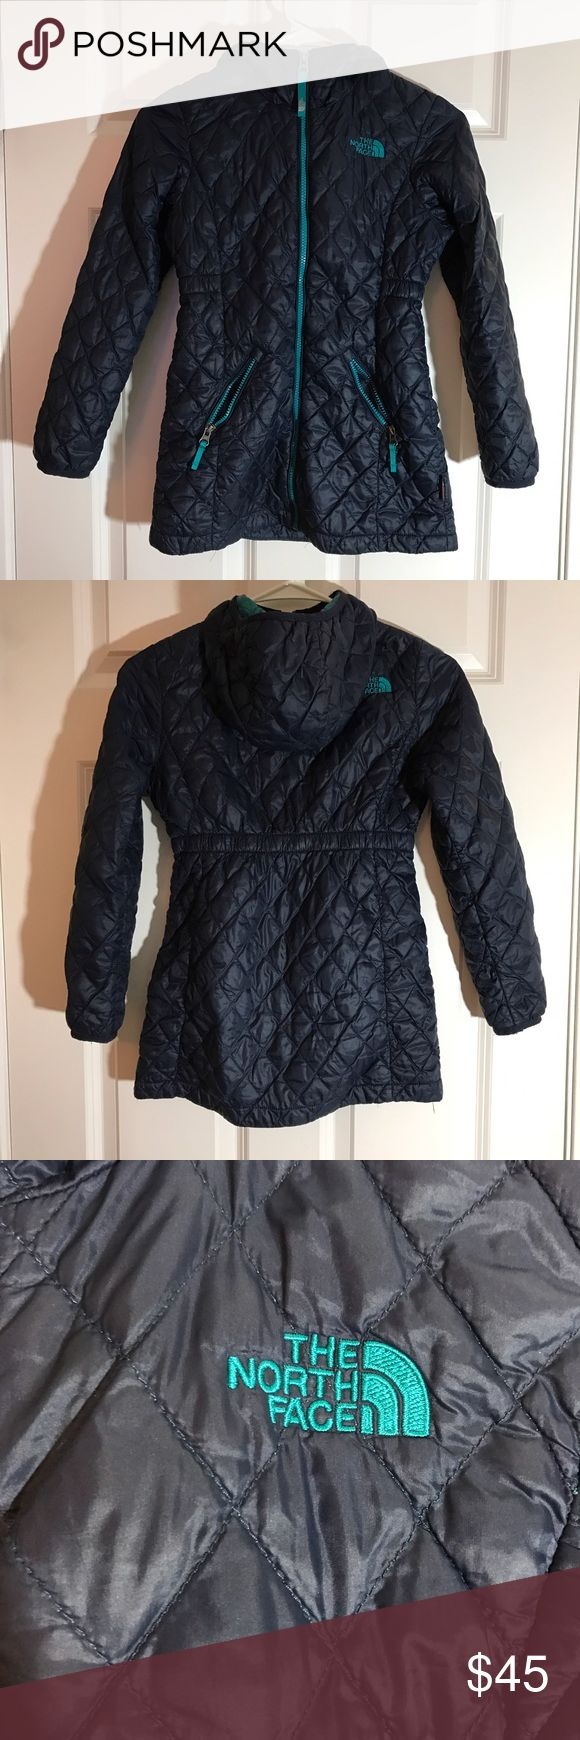 "Girls North face puffer jacket with hood Dark blue puffer jacket with hood. The inside is a beautiful teal color. This jacket is a must have for fall! The size is S/P or a 7/8. The pit to pit is 16"". North Face Jackets & Coats Puffers"